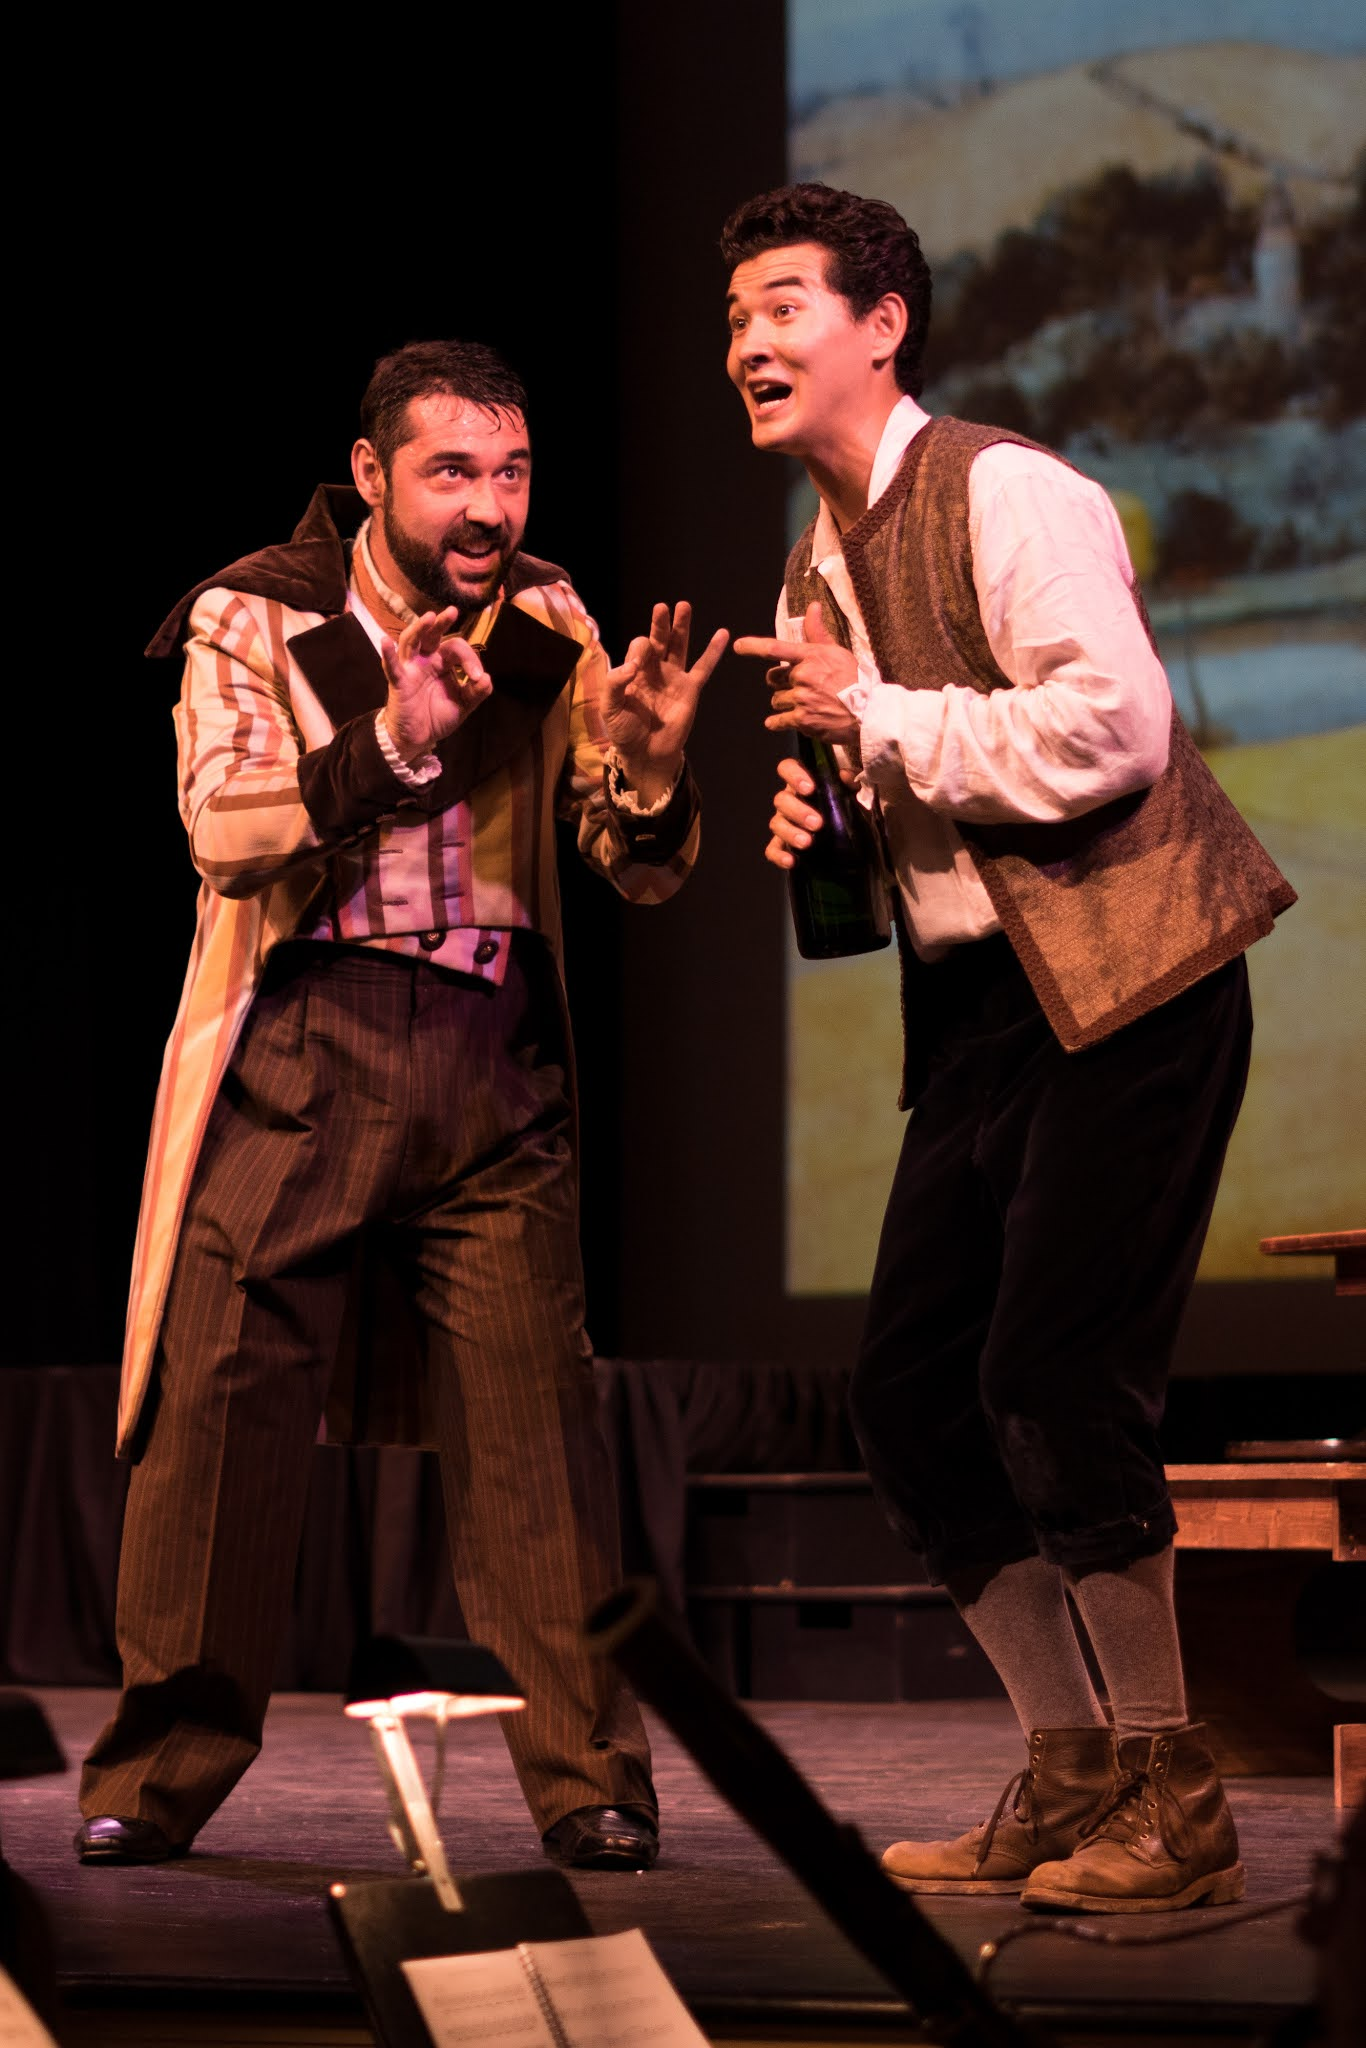 IN REVIEW: bass-baritone YURI KISSIN as Dulcamara (left) and tenor PAVEL SULIANDZIGA as Nemorino (right) in the Emerald Cast of Opera in Williamsburg's September 2021 production of Gaetano Donizetti's L'ELISIR D'AMORE [Photograph © by Diego Valdez; used with permission]